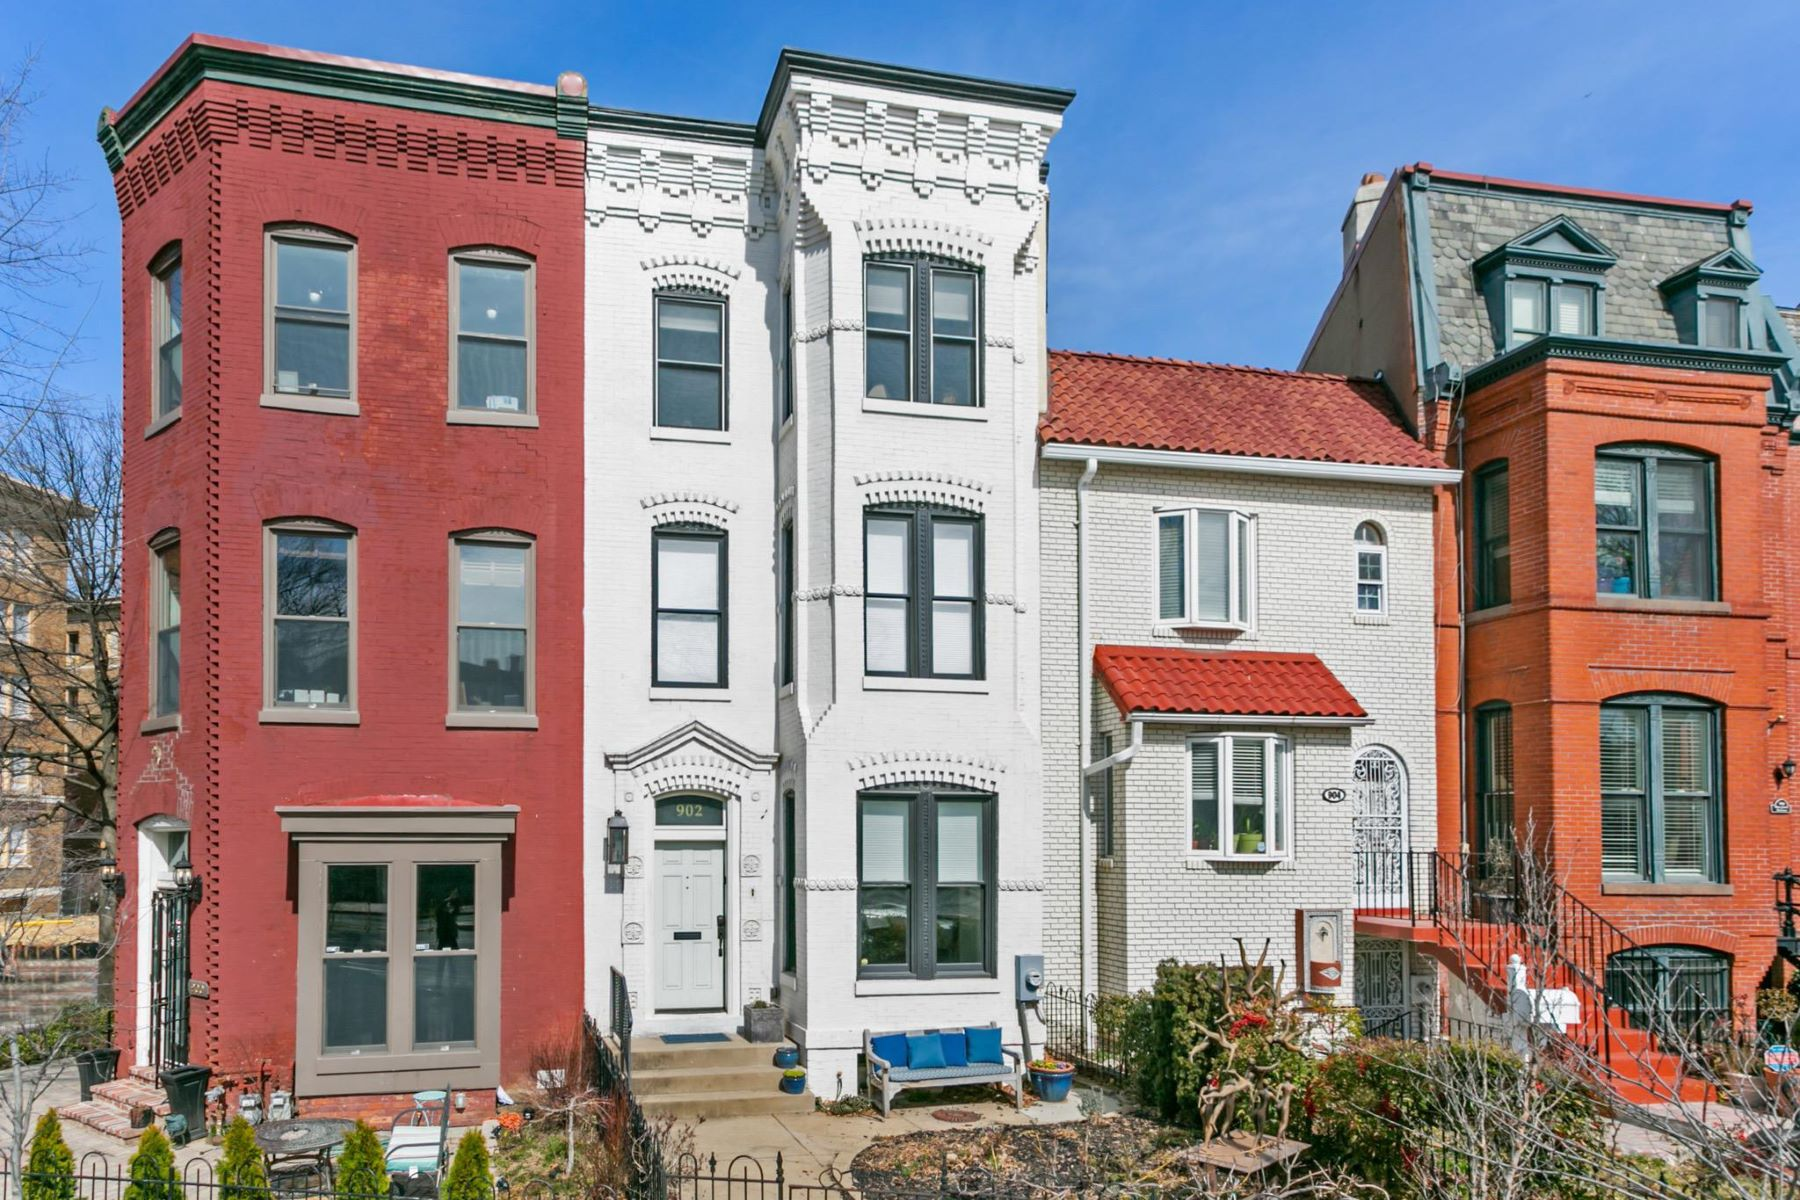 Townhouse for Sale at 902 Maryland Ave NE Washington, District Of Columbia 20002 United States